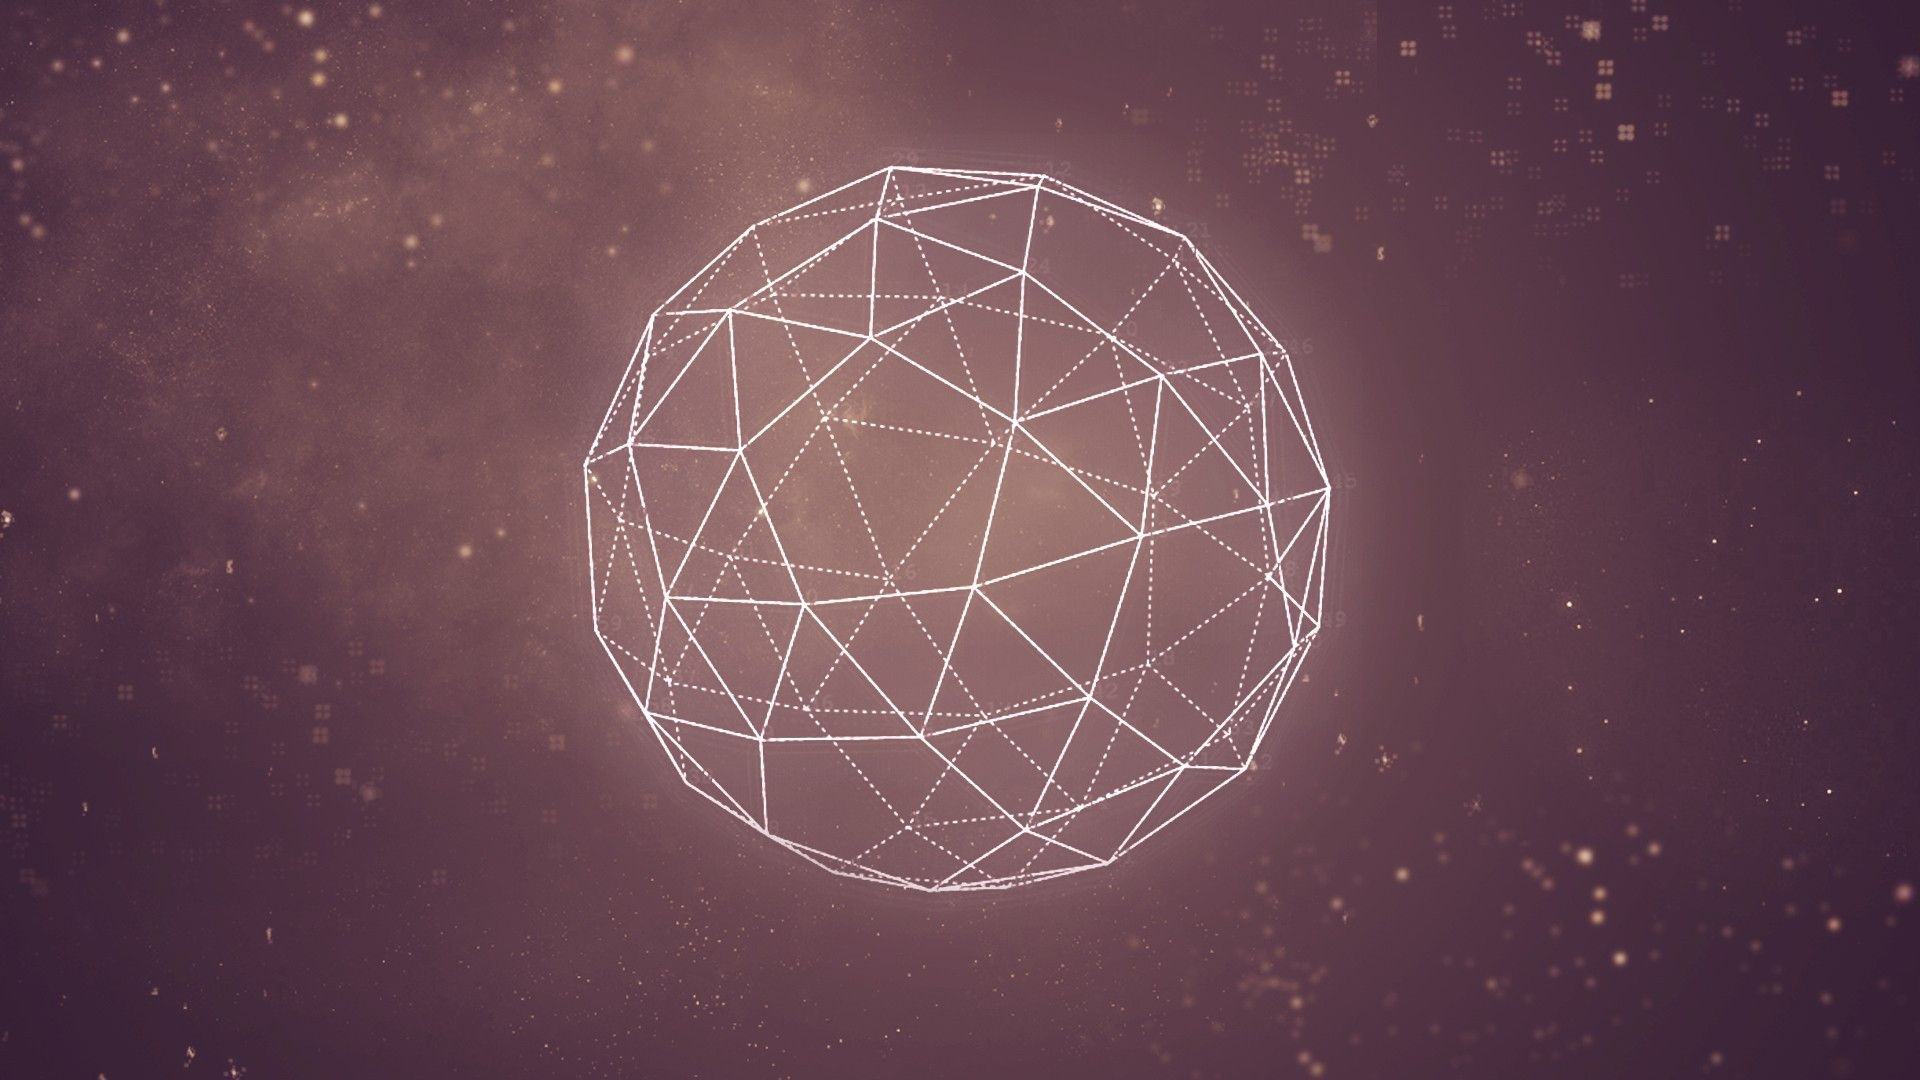 Geometric 3d background hd background hd screensavers hd for 3d large wallpaper